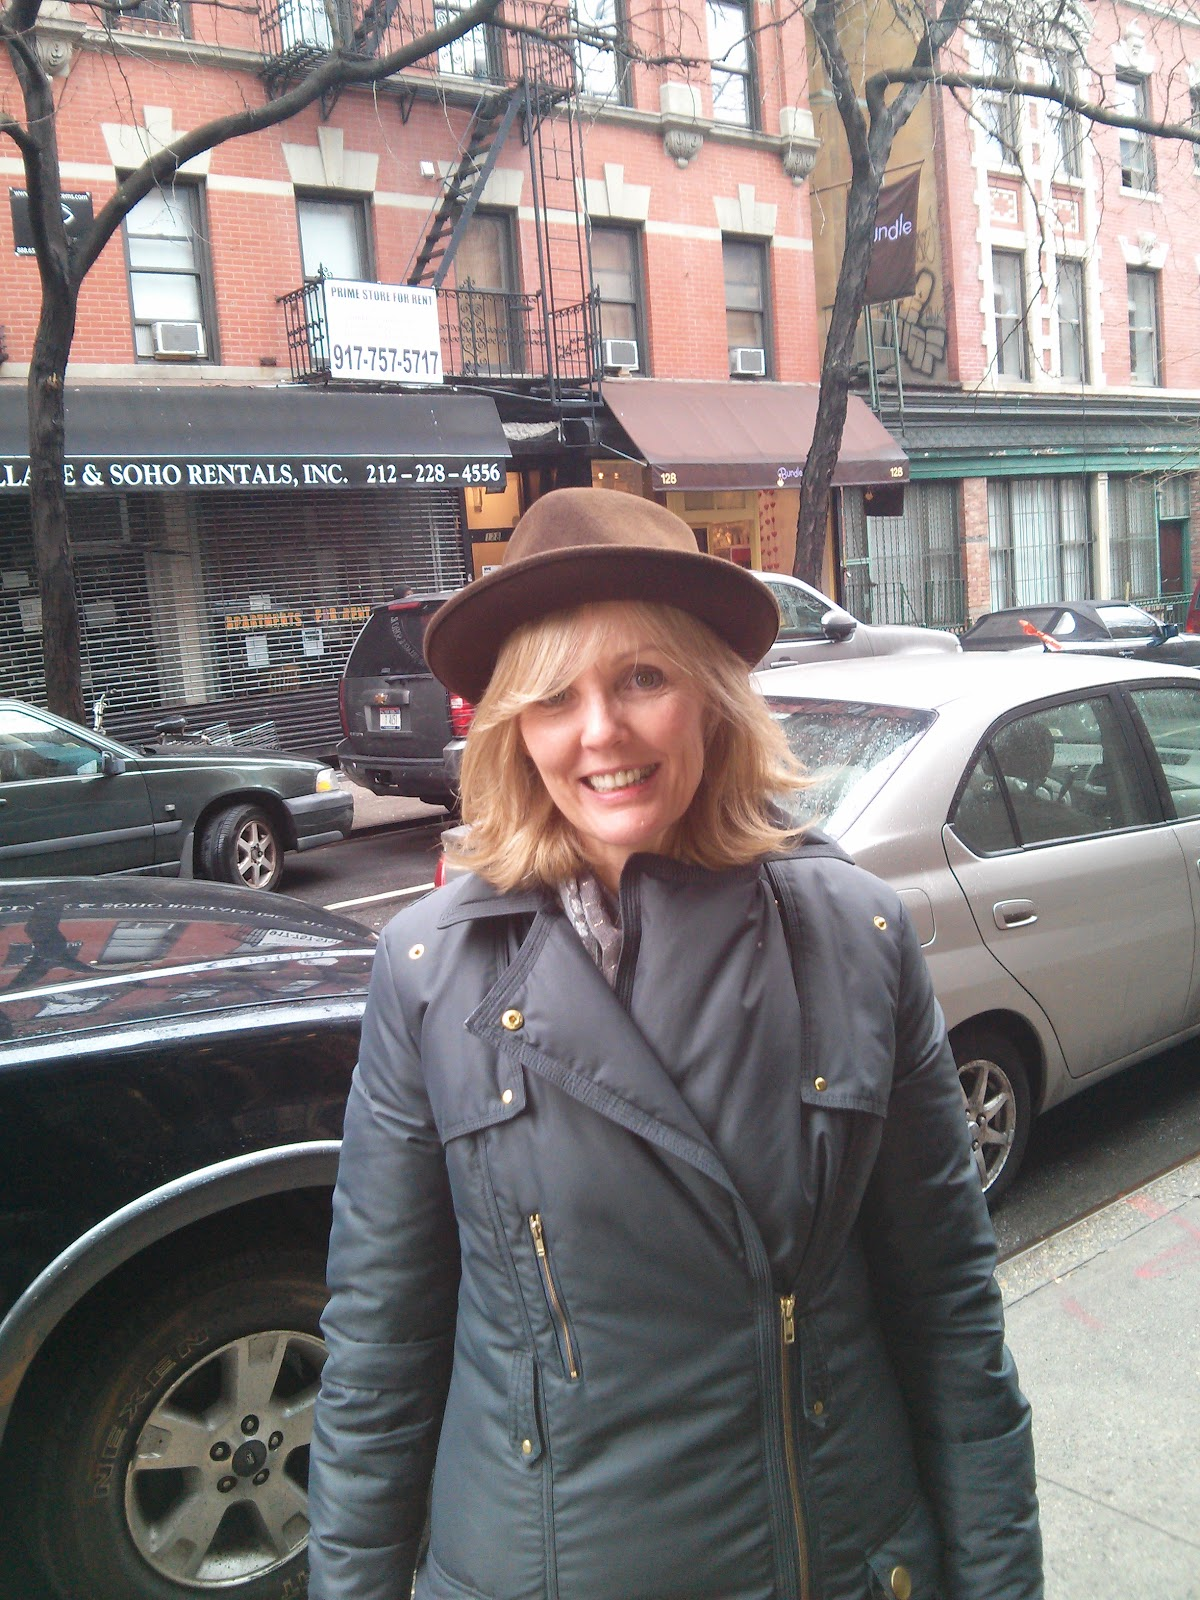 Nyc Hats uk Stetson Hat on a Lady in Nyc